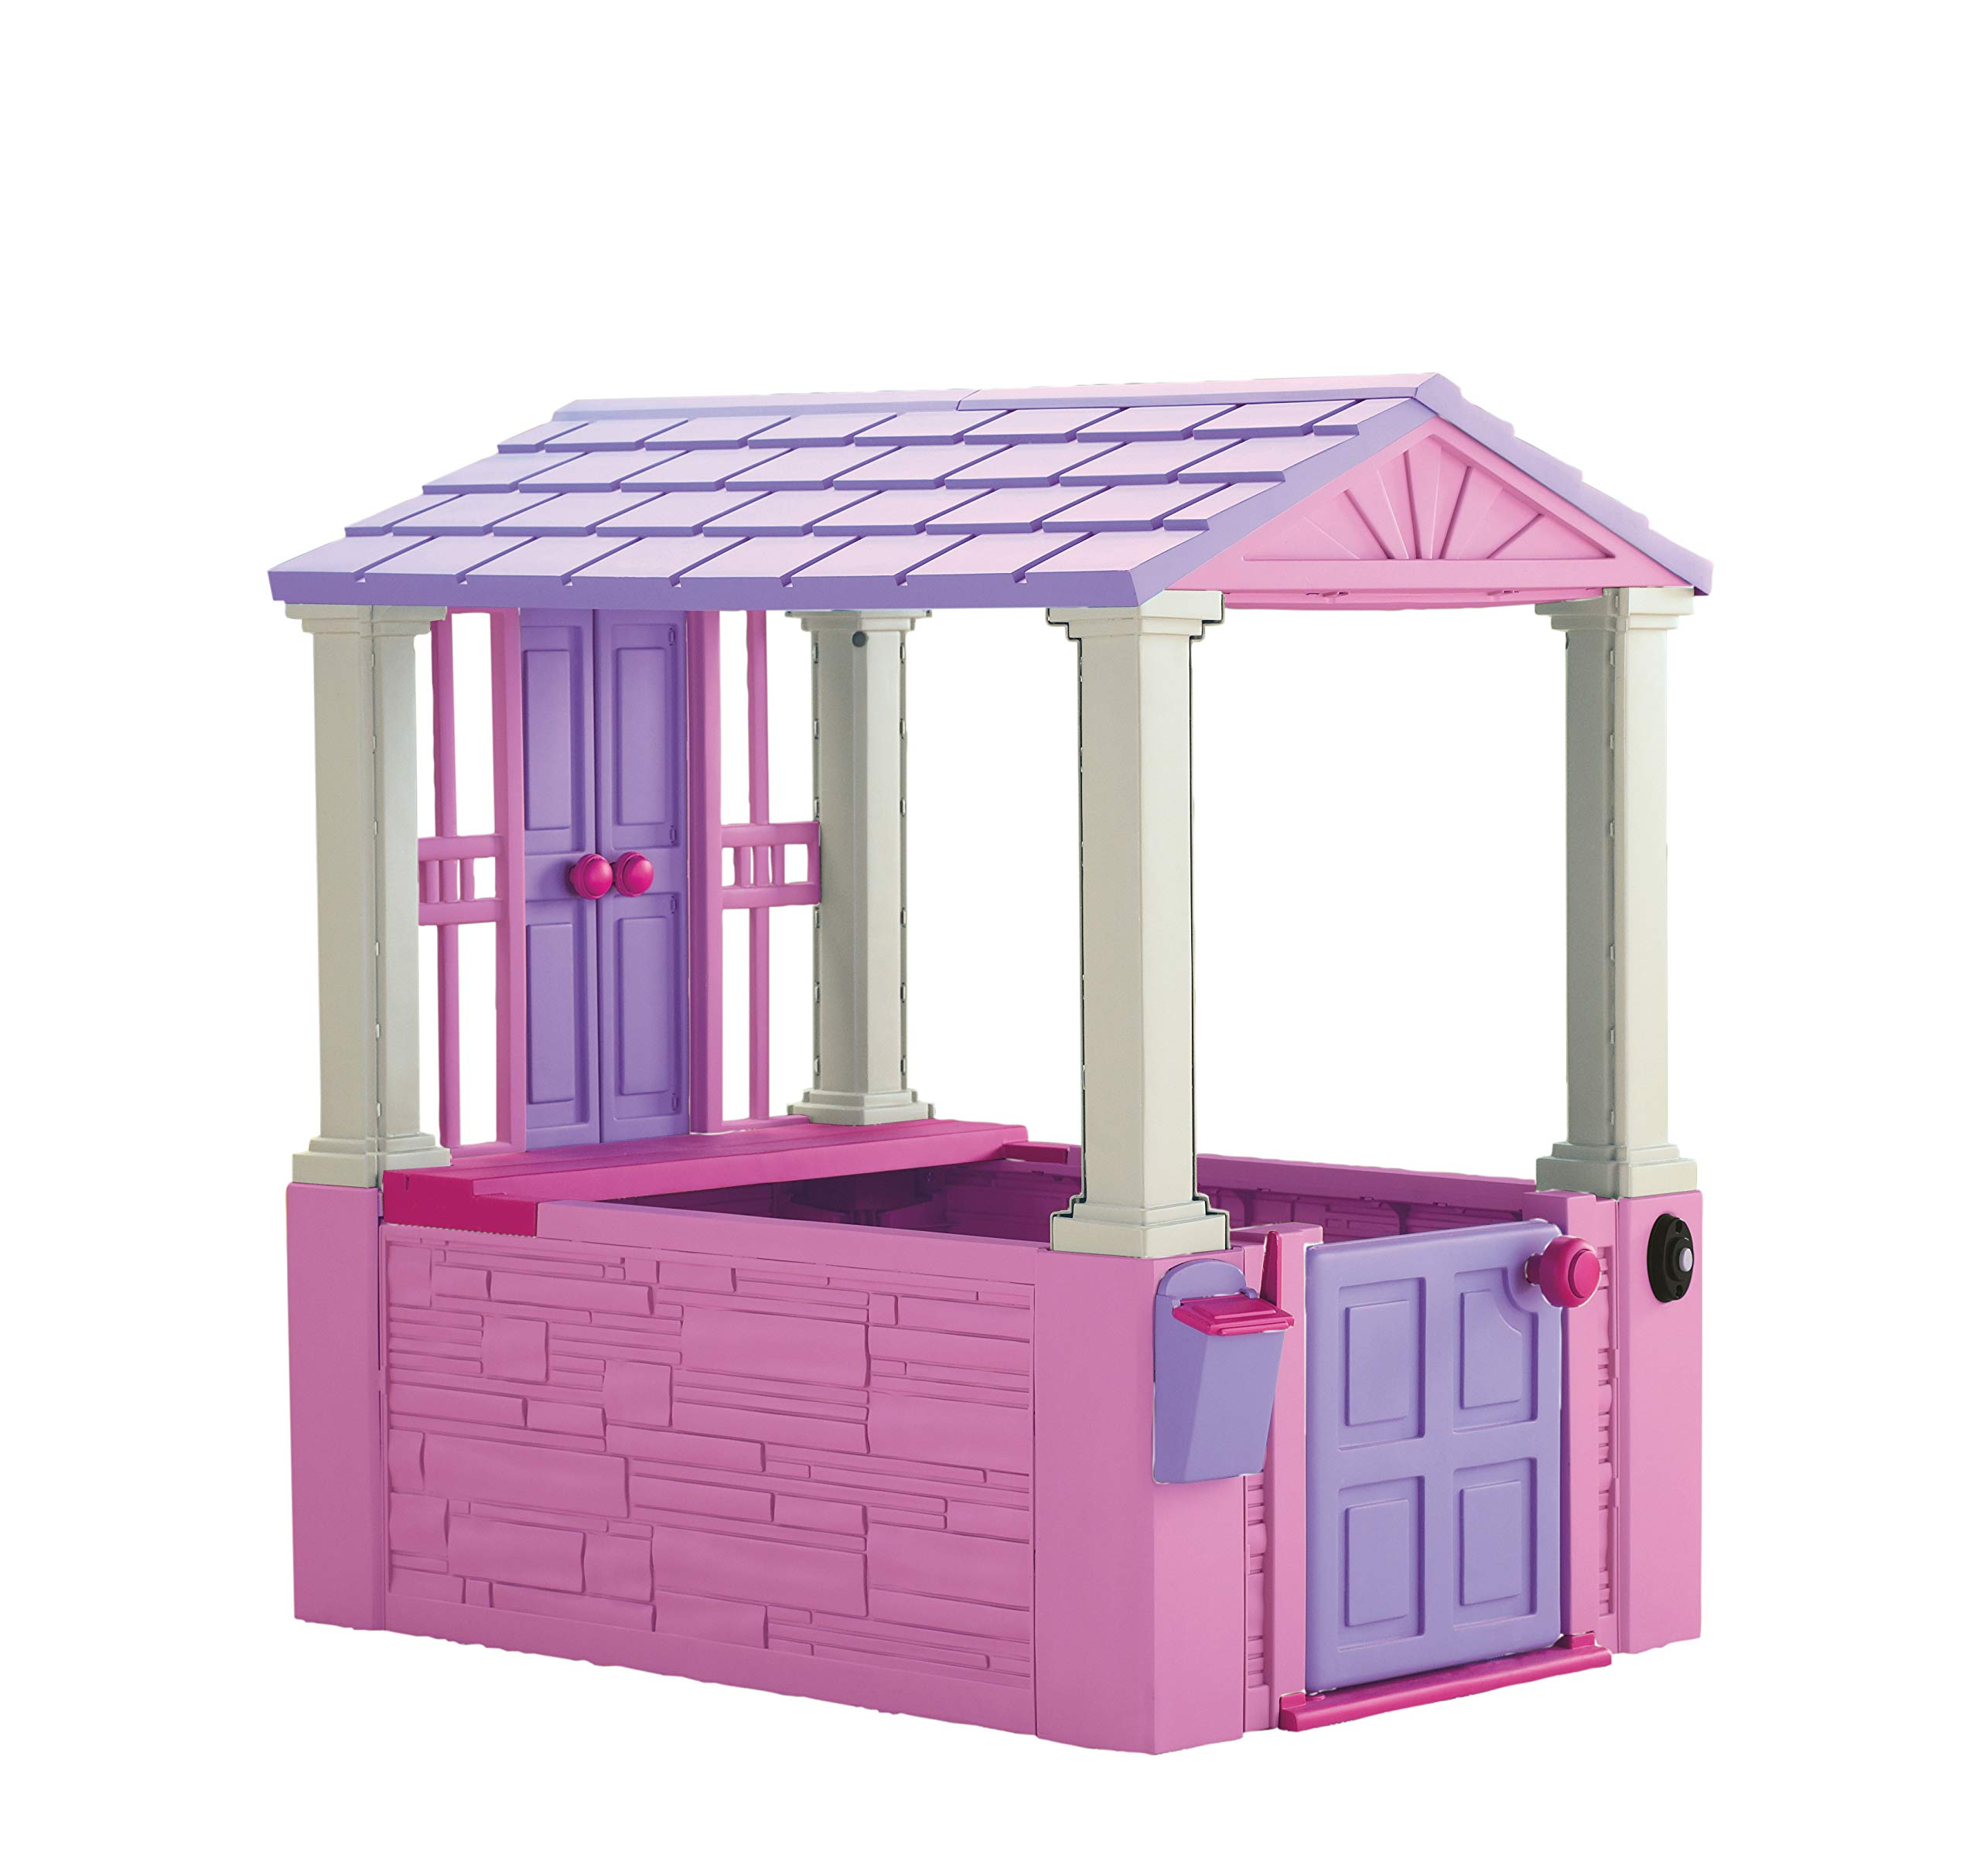 American Plastic Toys My Very Own Dream Cottage Playhouse by American Plastic Toys